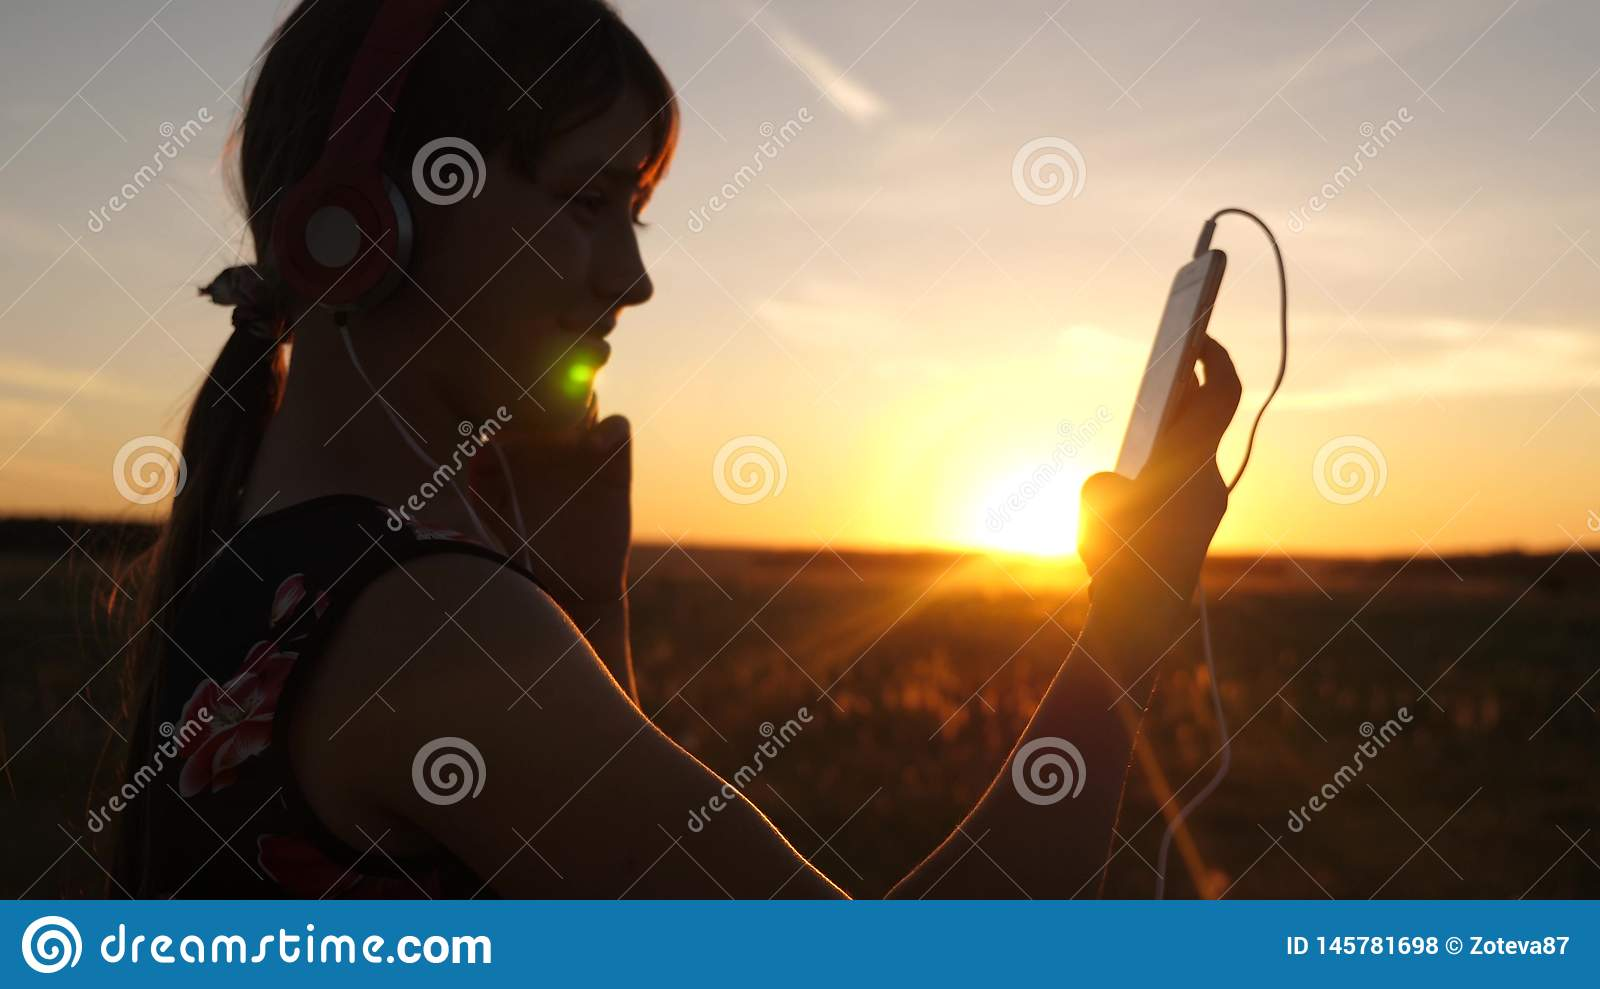 22 491 Music Sunset Photos Free Royalty Free Stock Photos From Dreamstime